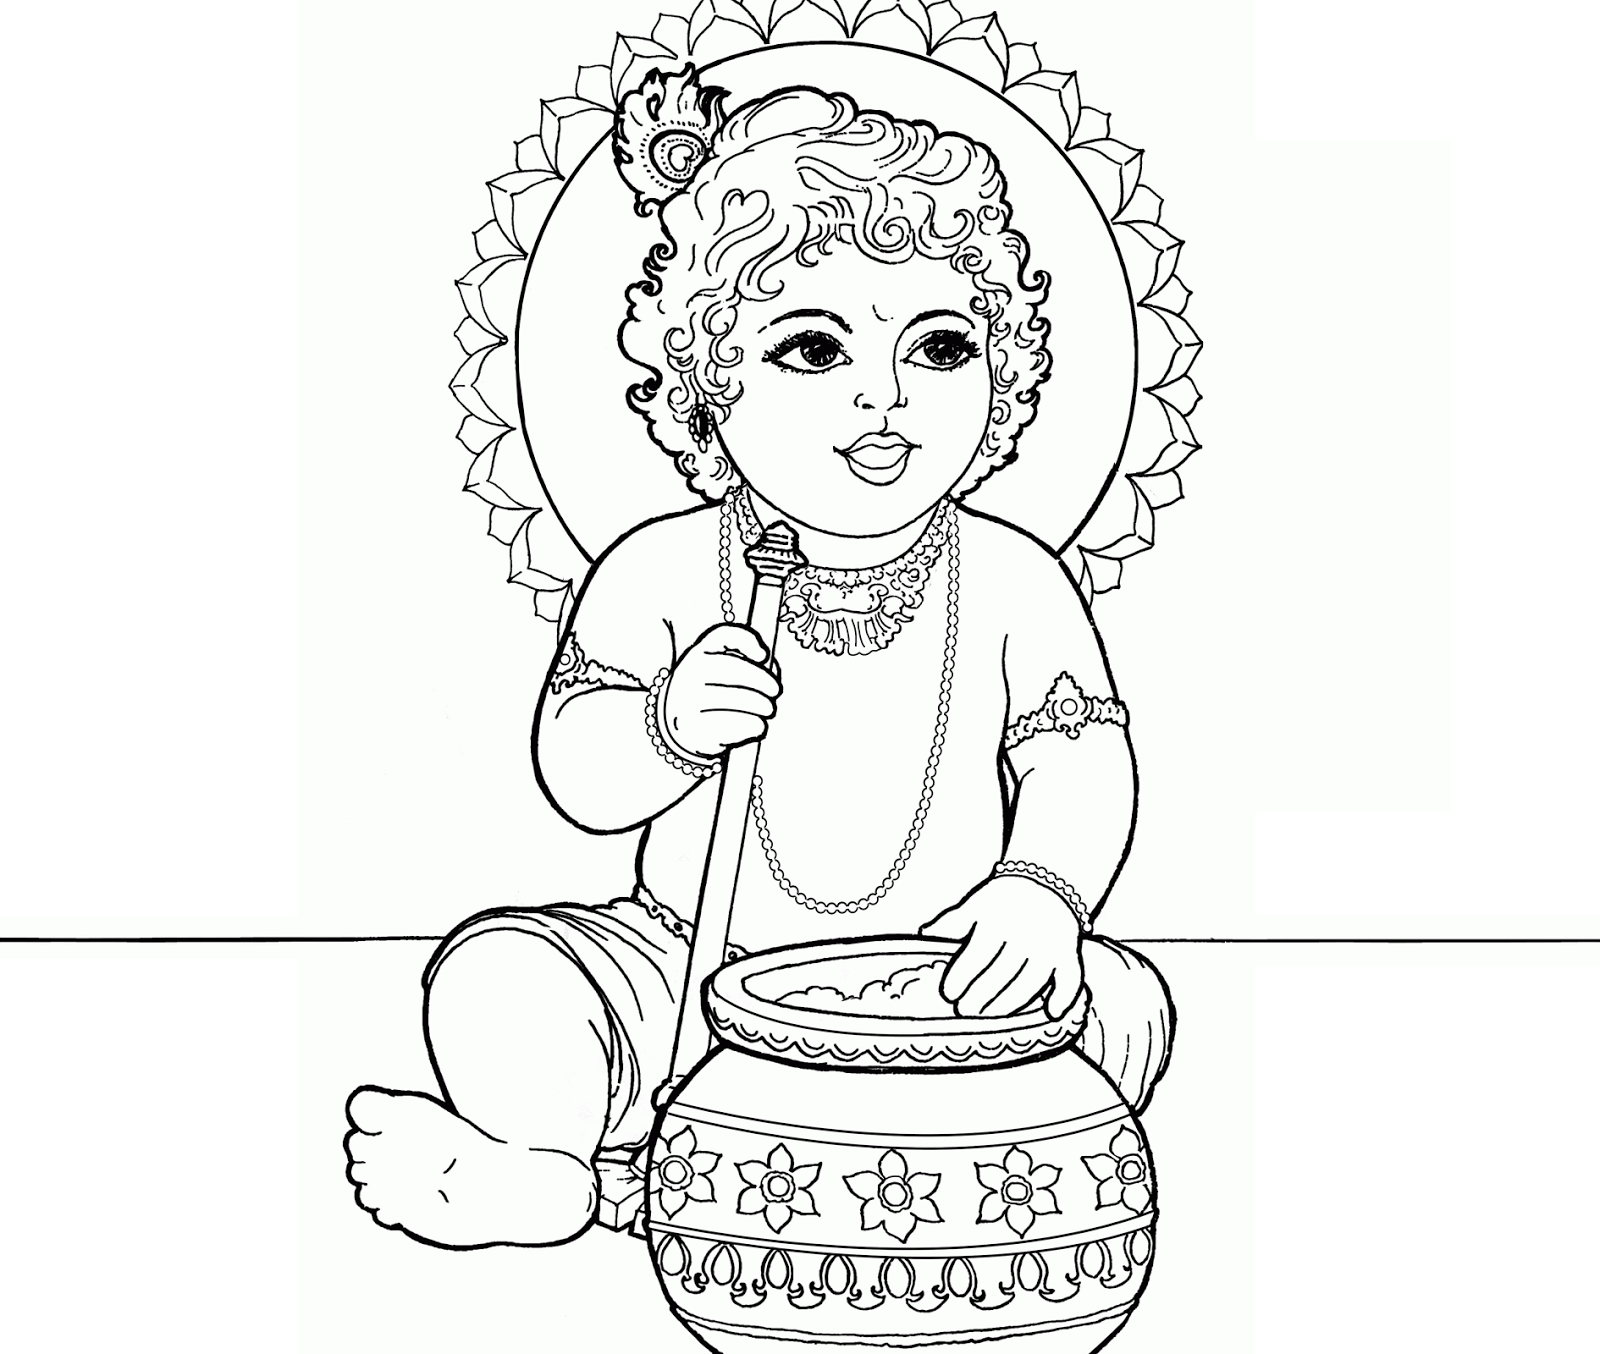 Colour Drawing Free Wallpaper Lord Baby Krishna Coloring Drawing Free Wallpaper